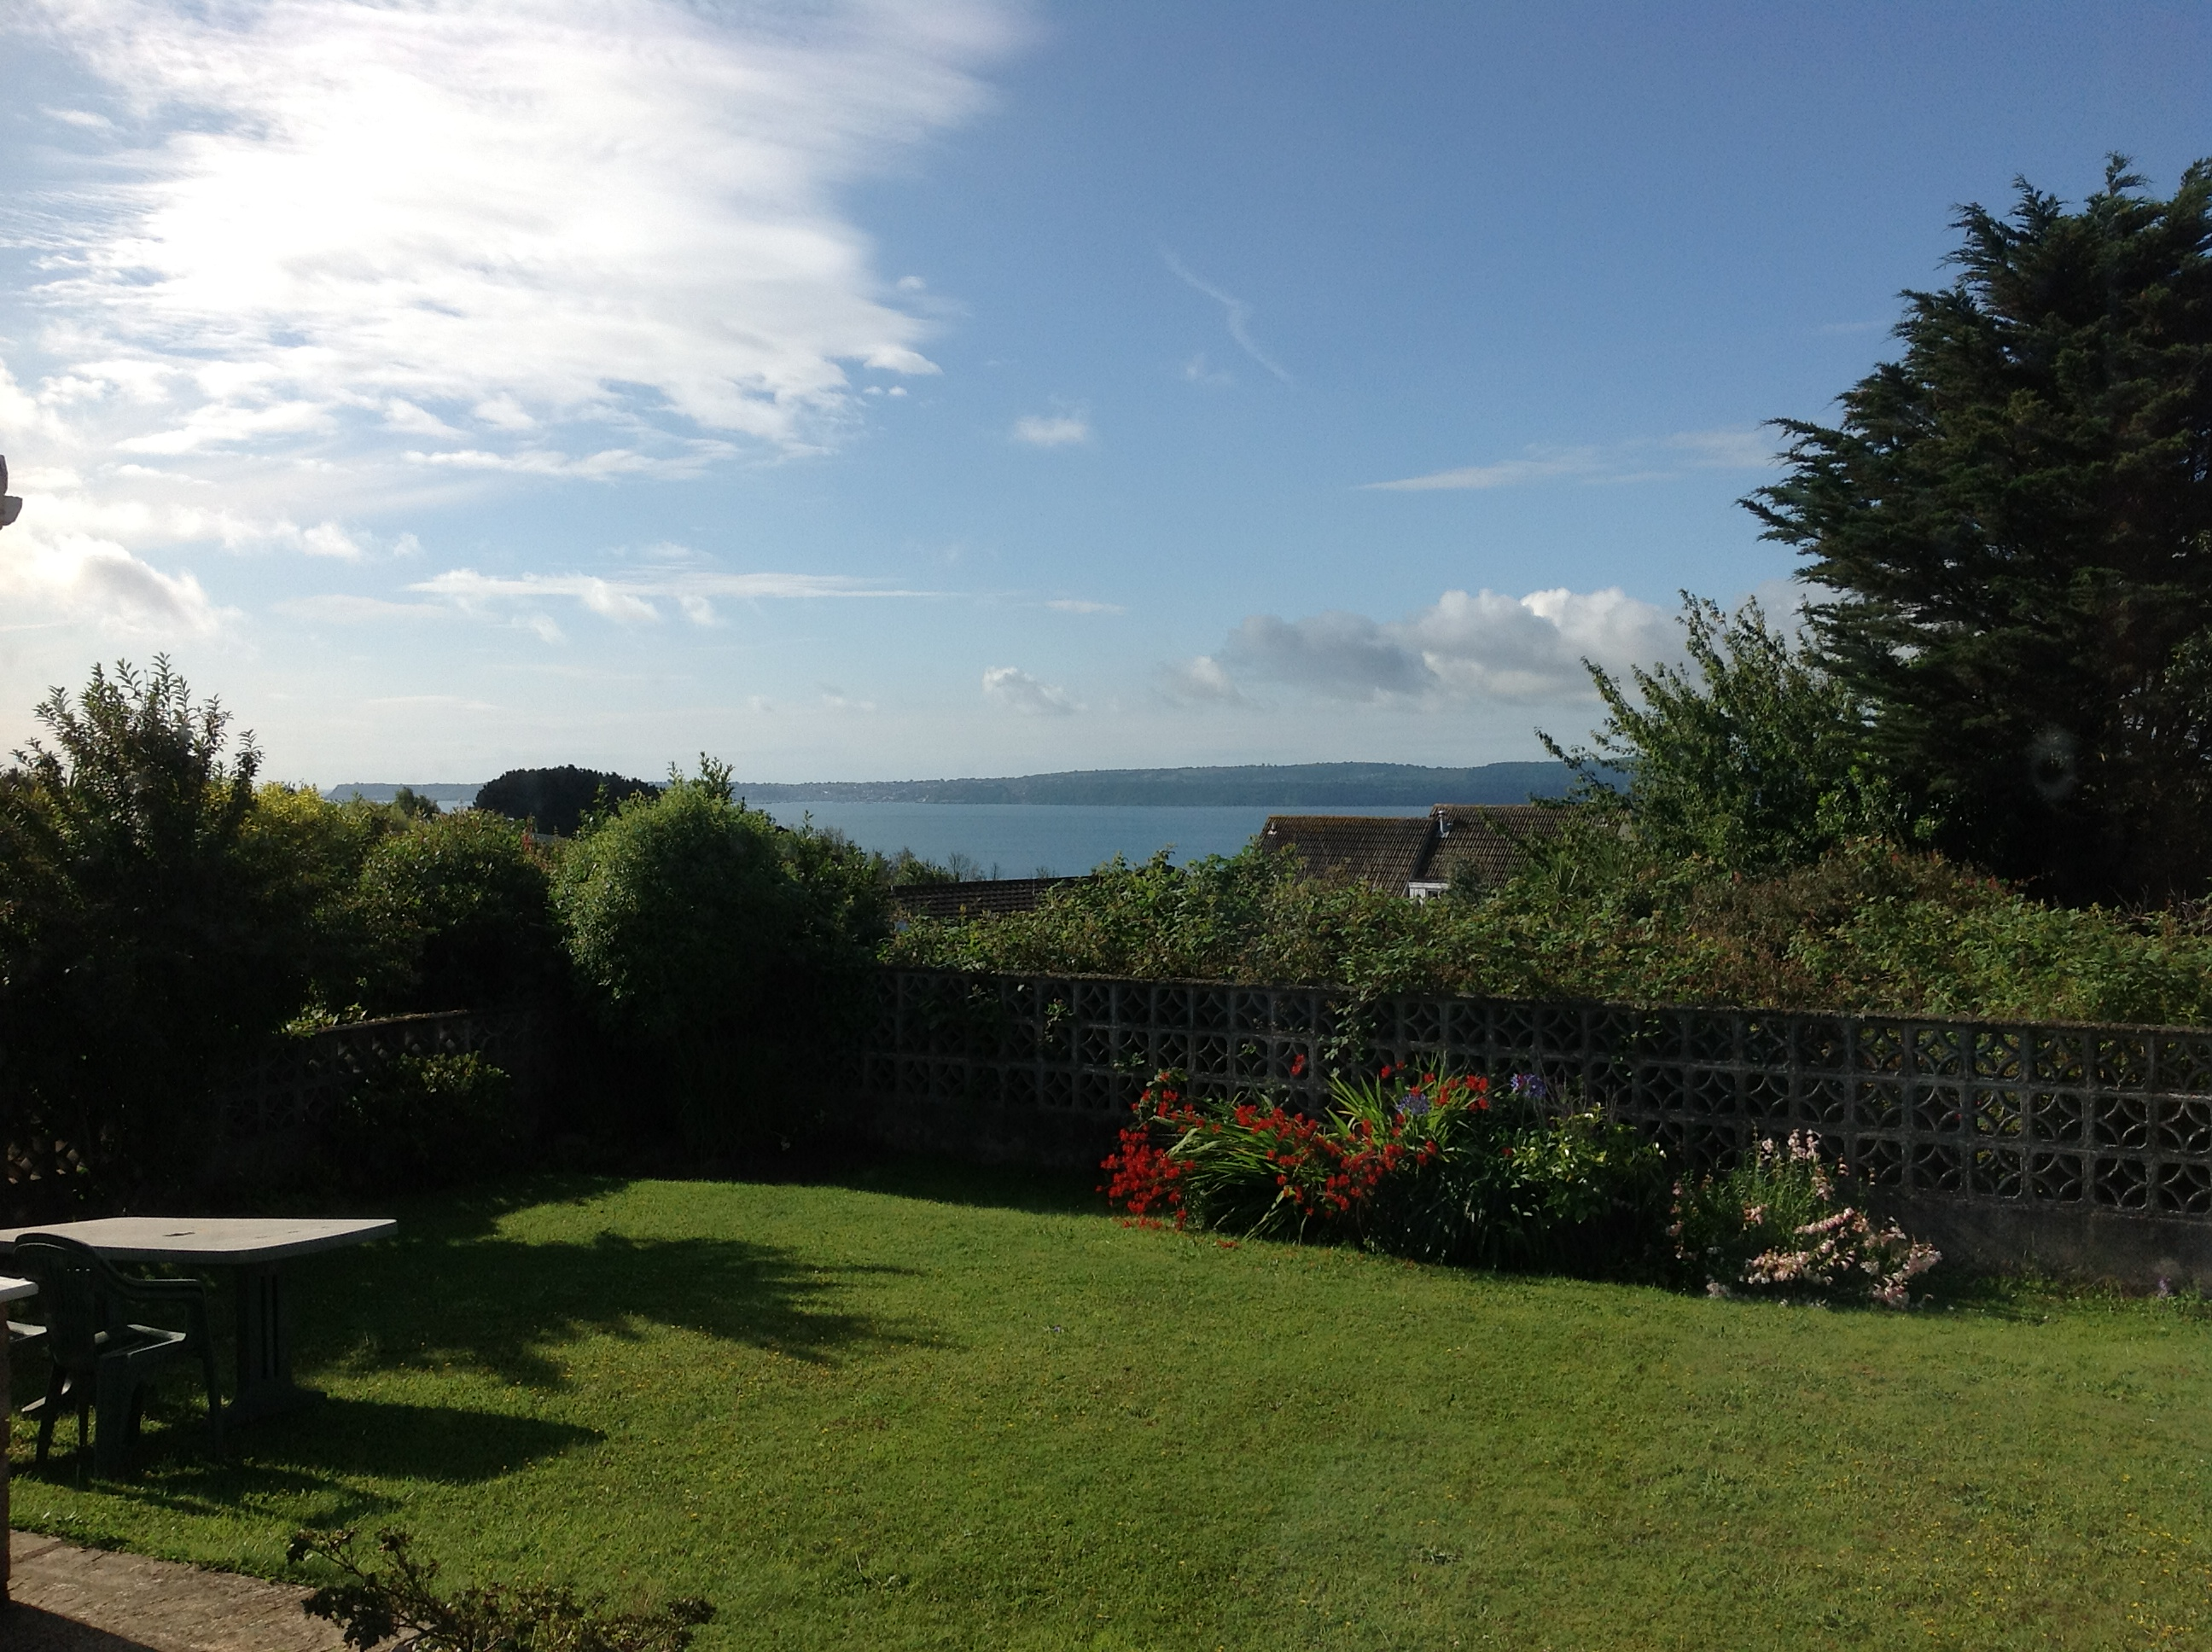 Our garden just after we moved in. The far side of the Bay (Torbay) is where Henry Francis Lyte wrote the hymn Abide with Me.